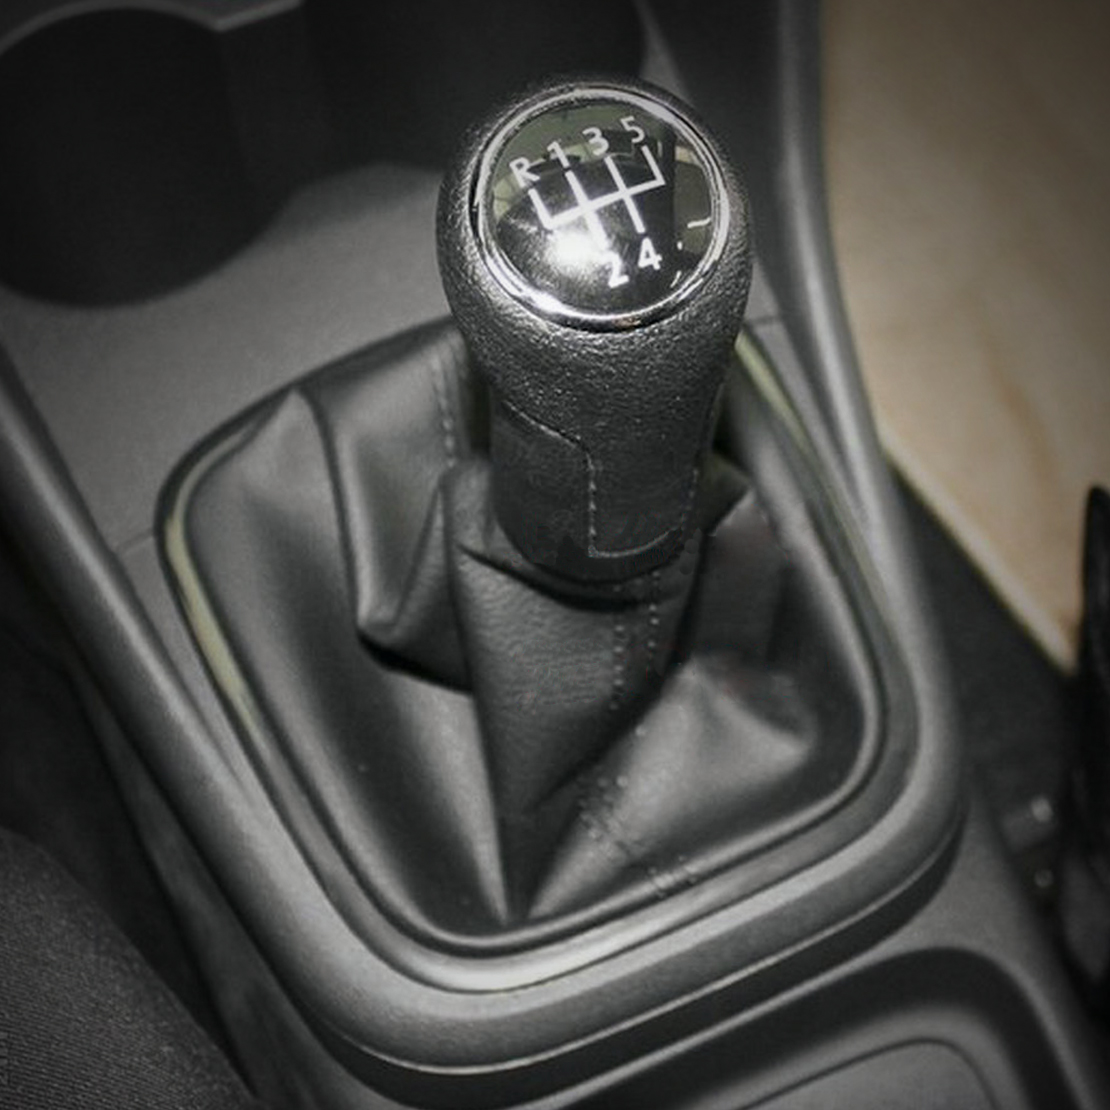 5 Speed Car Styling Manual Gear Shift Knob With Gaiter Boot Cover